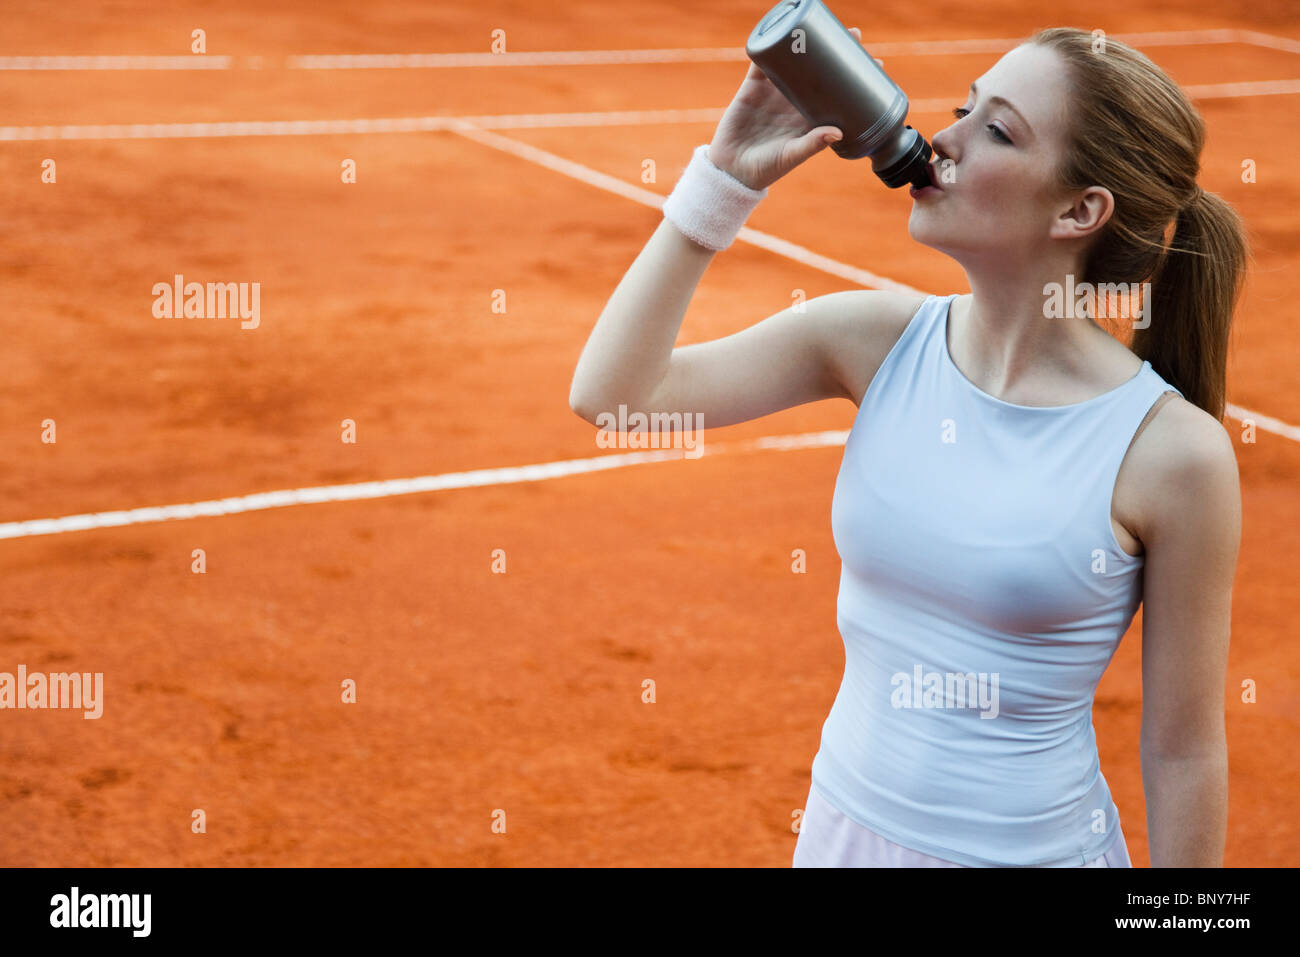 Tennis player drinking from water bottle - Stock Image